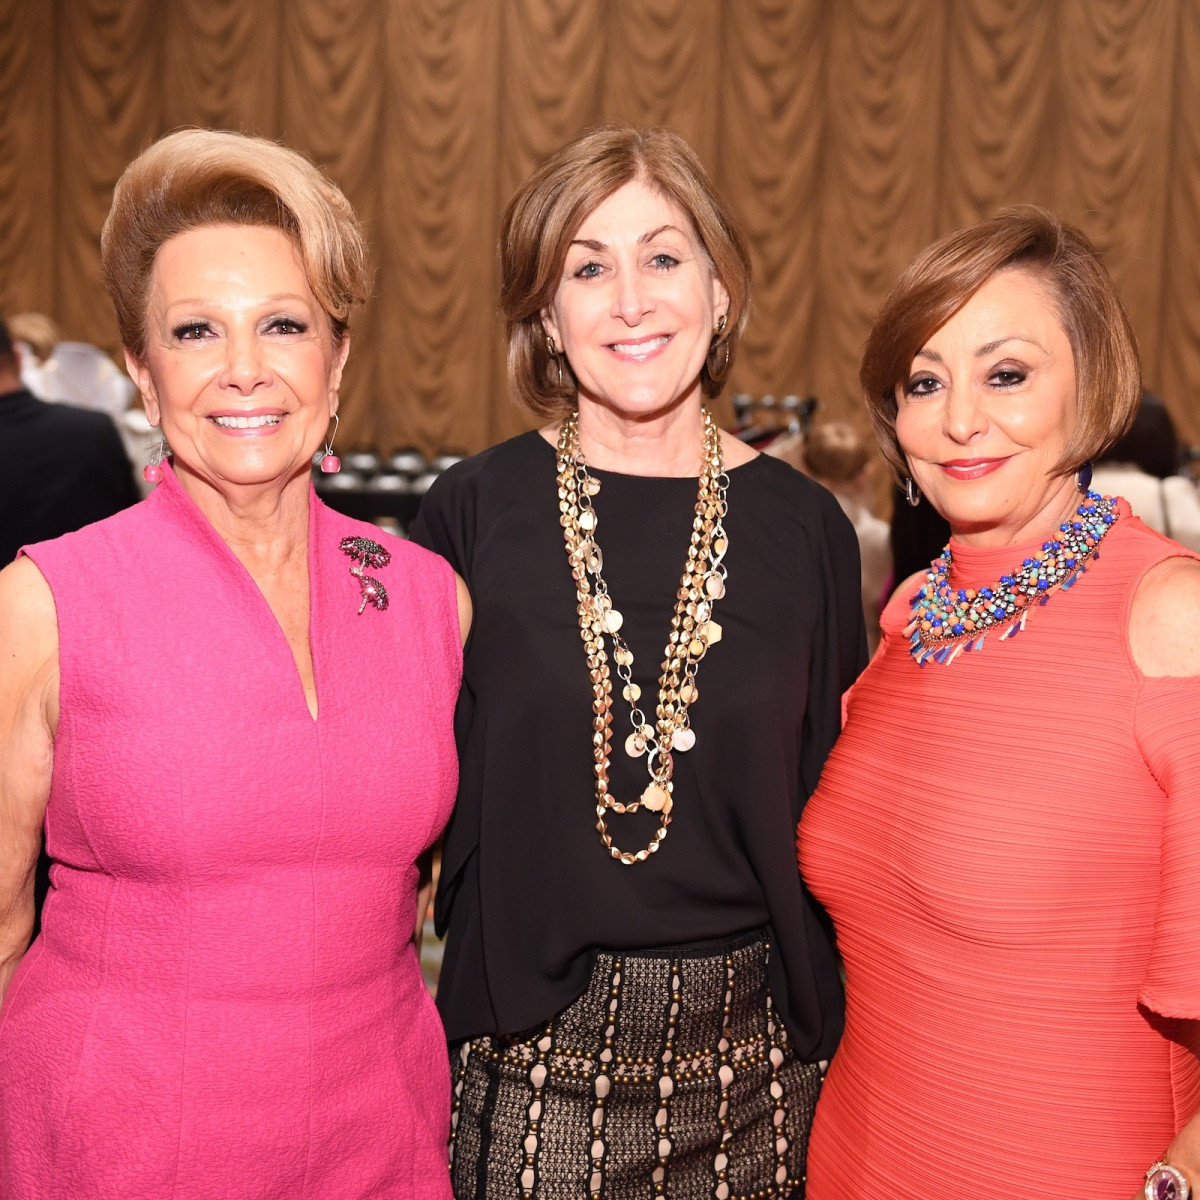 Latin Women Initiative Luncheon, Philamnea Baird, Karen Winston, Patricia Domingue